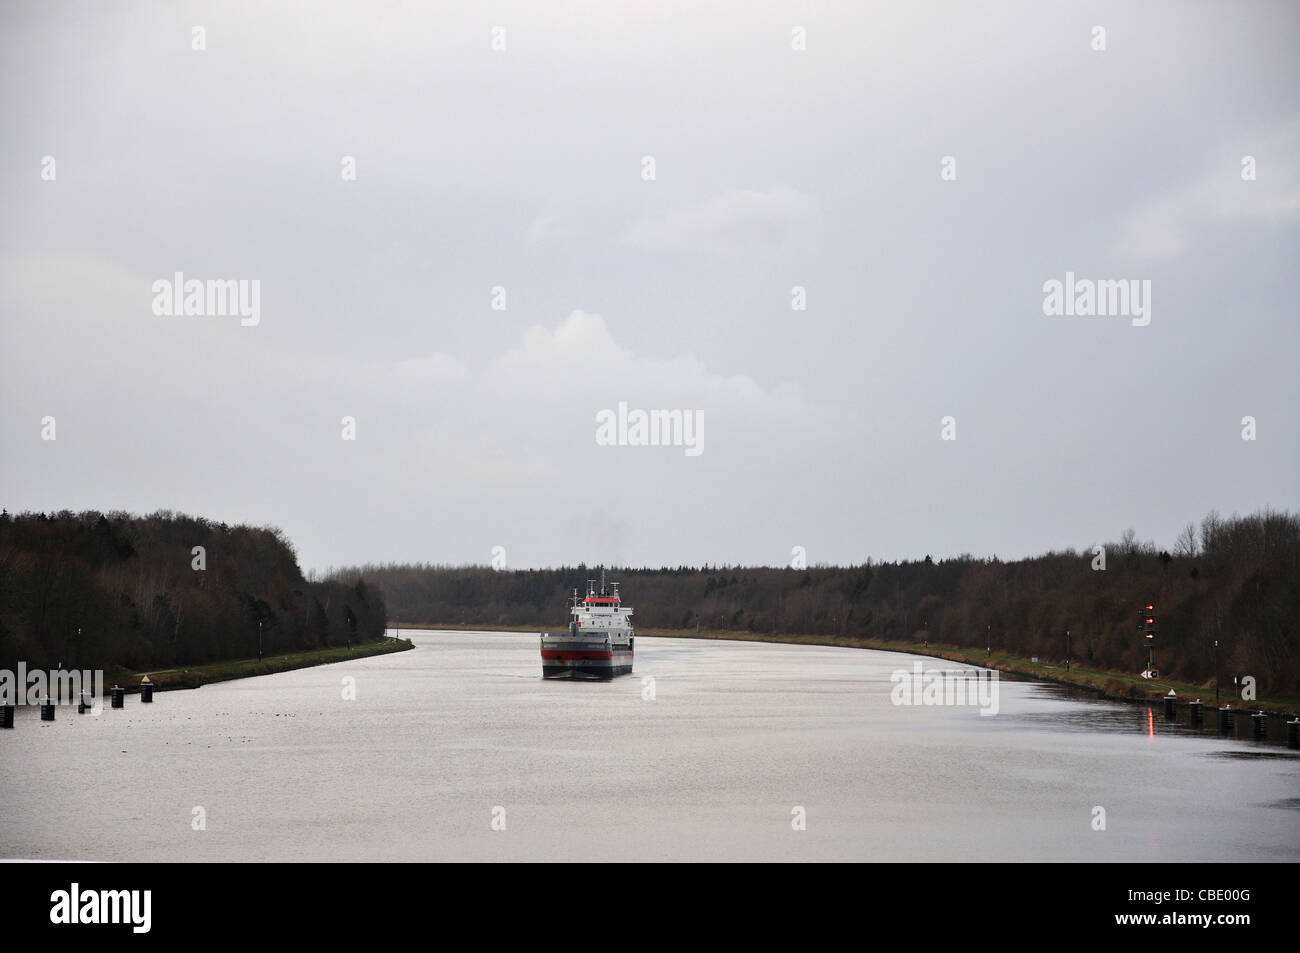 Ship passing through Kiel Canal, Schleswig-Holstein, Federal Republic of Germany - Stock Image